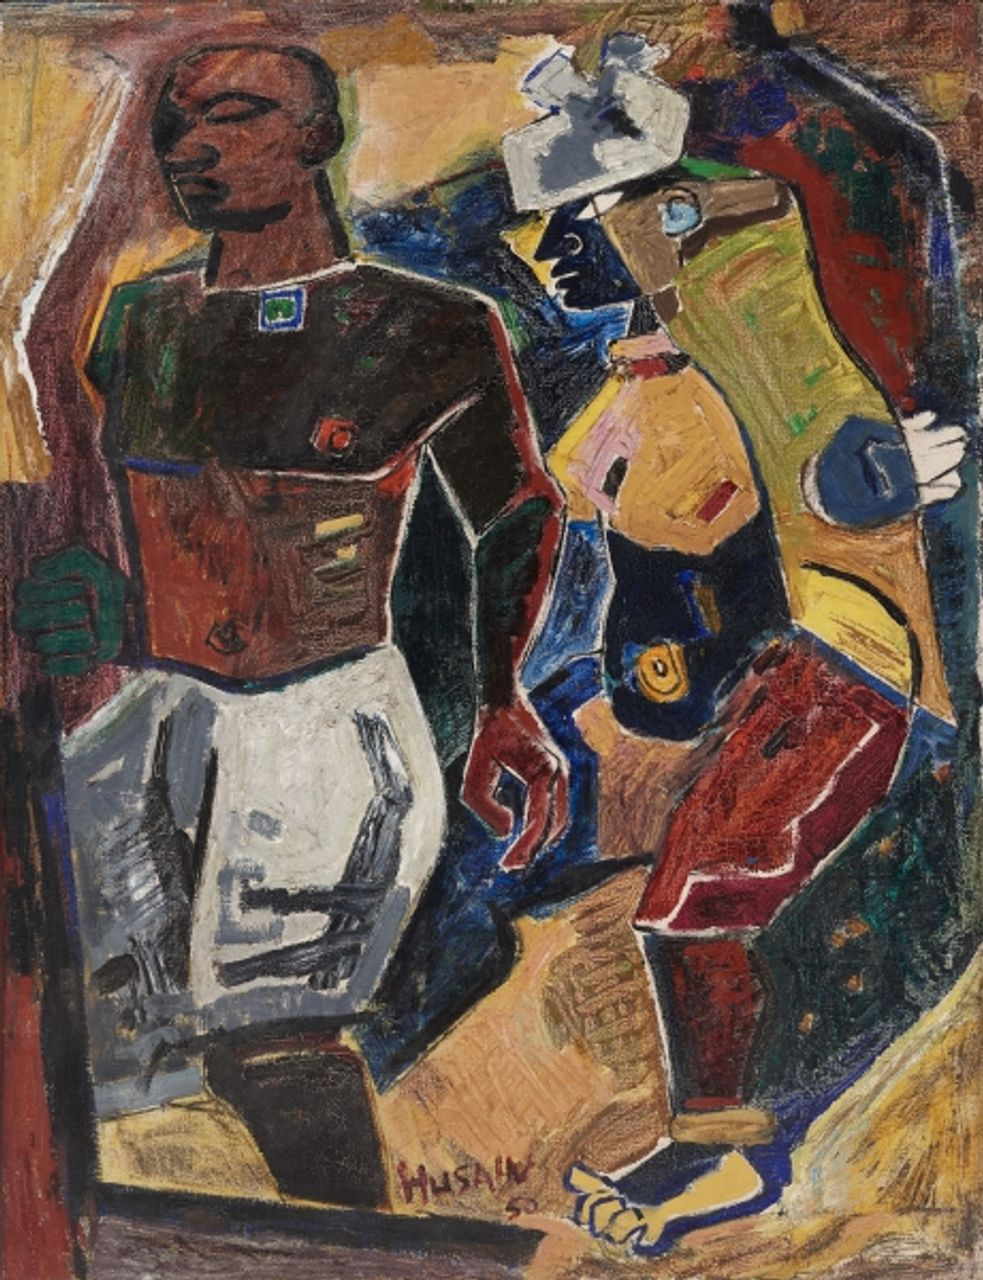 M. F. Husain, Peasant Couple (1950). Oil on canvas. Courtesy of the Peabody Essex Museum, Salem, MA.